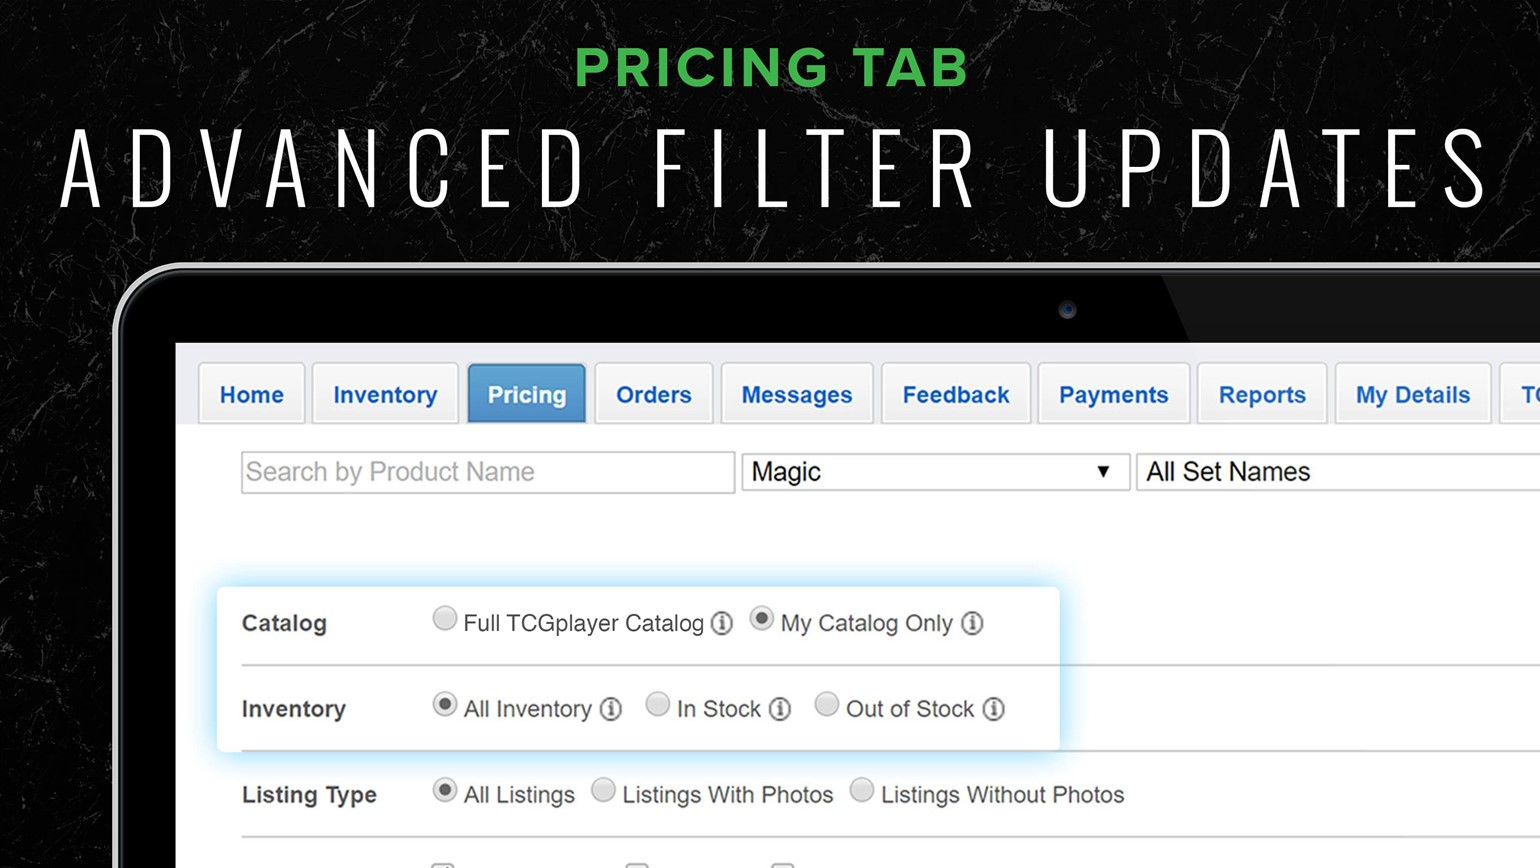 Manage Inventory More Effectively with Updated Pricing Tab Filters